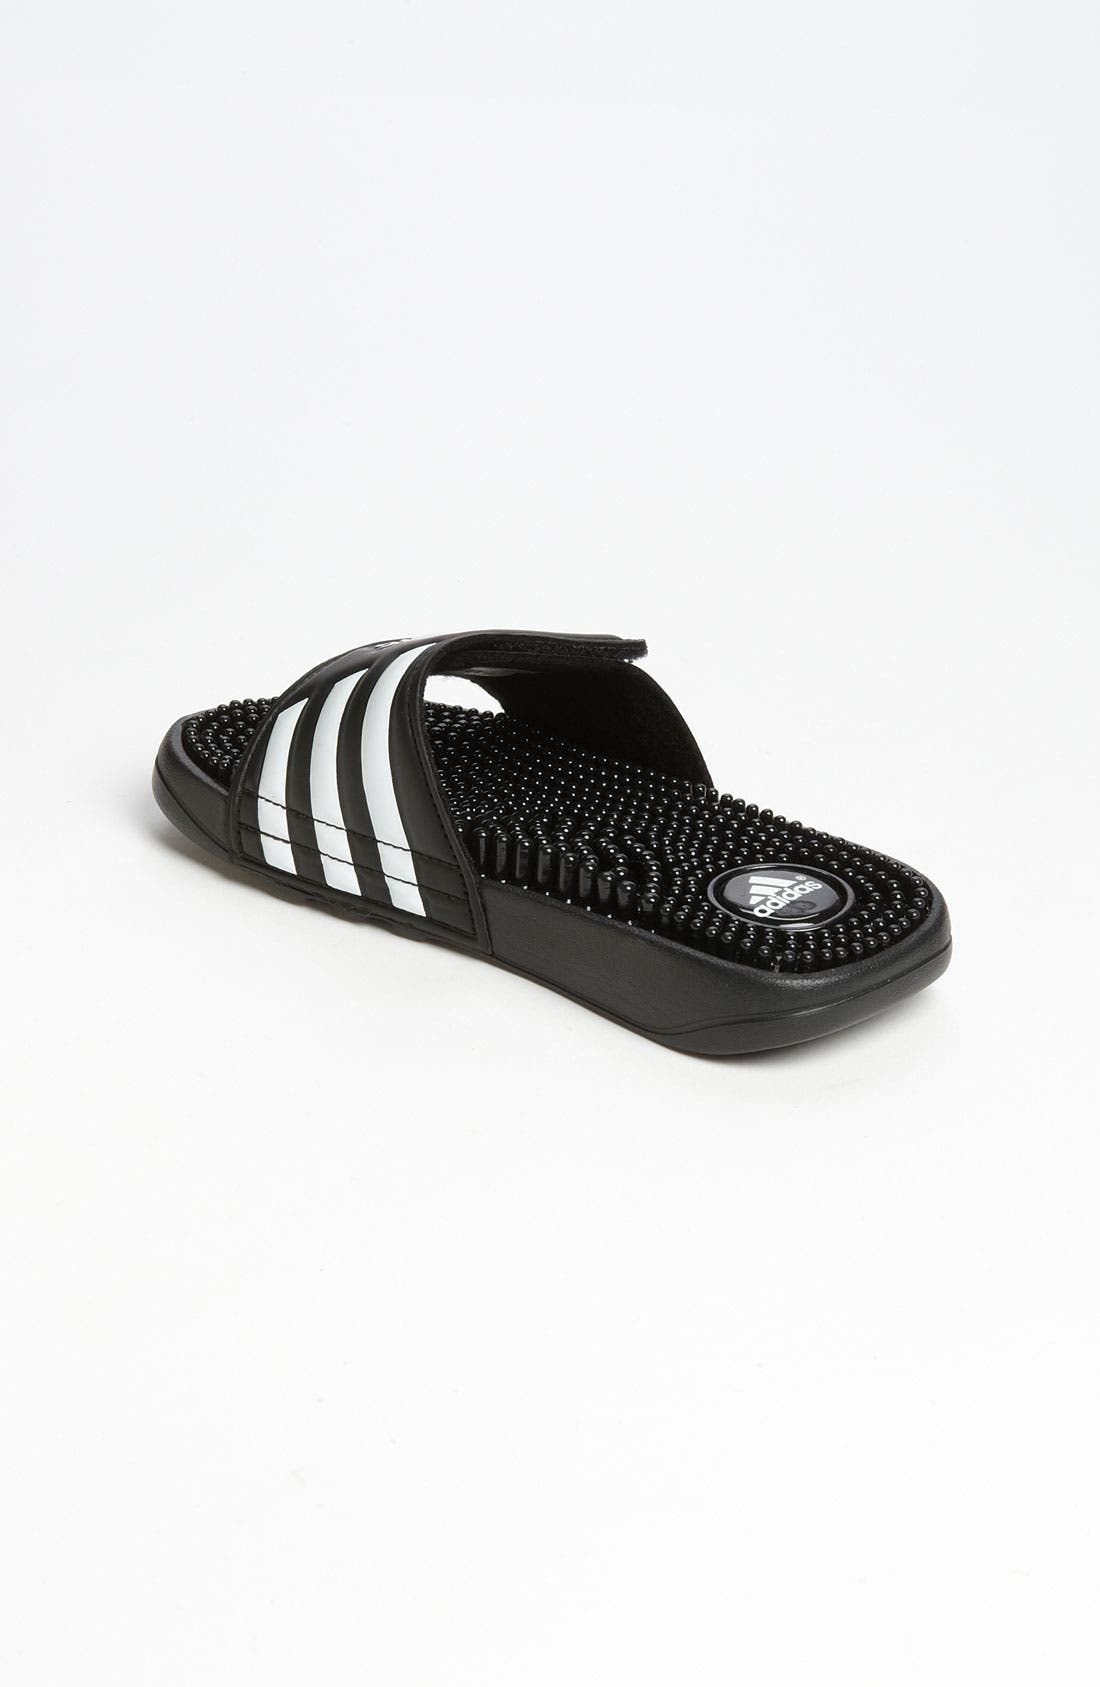 Alternate Image 2  - adidas 'Adissage' Sandal (Toddler, Little Kid & Big Kid)